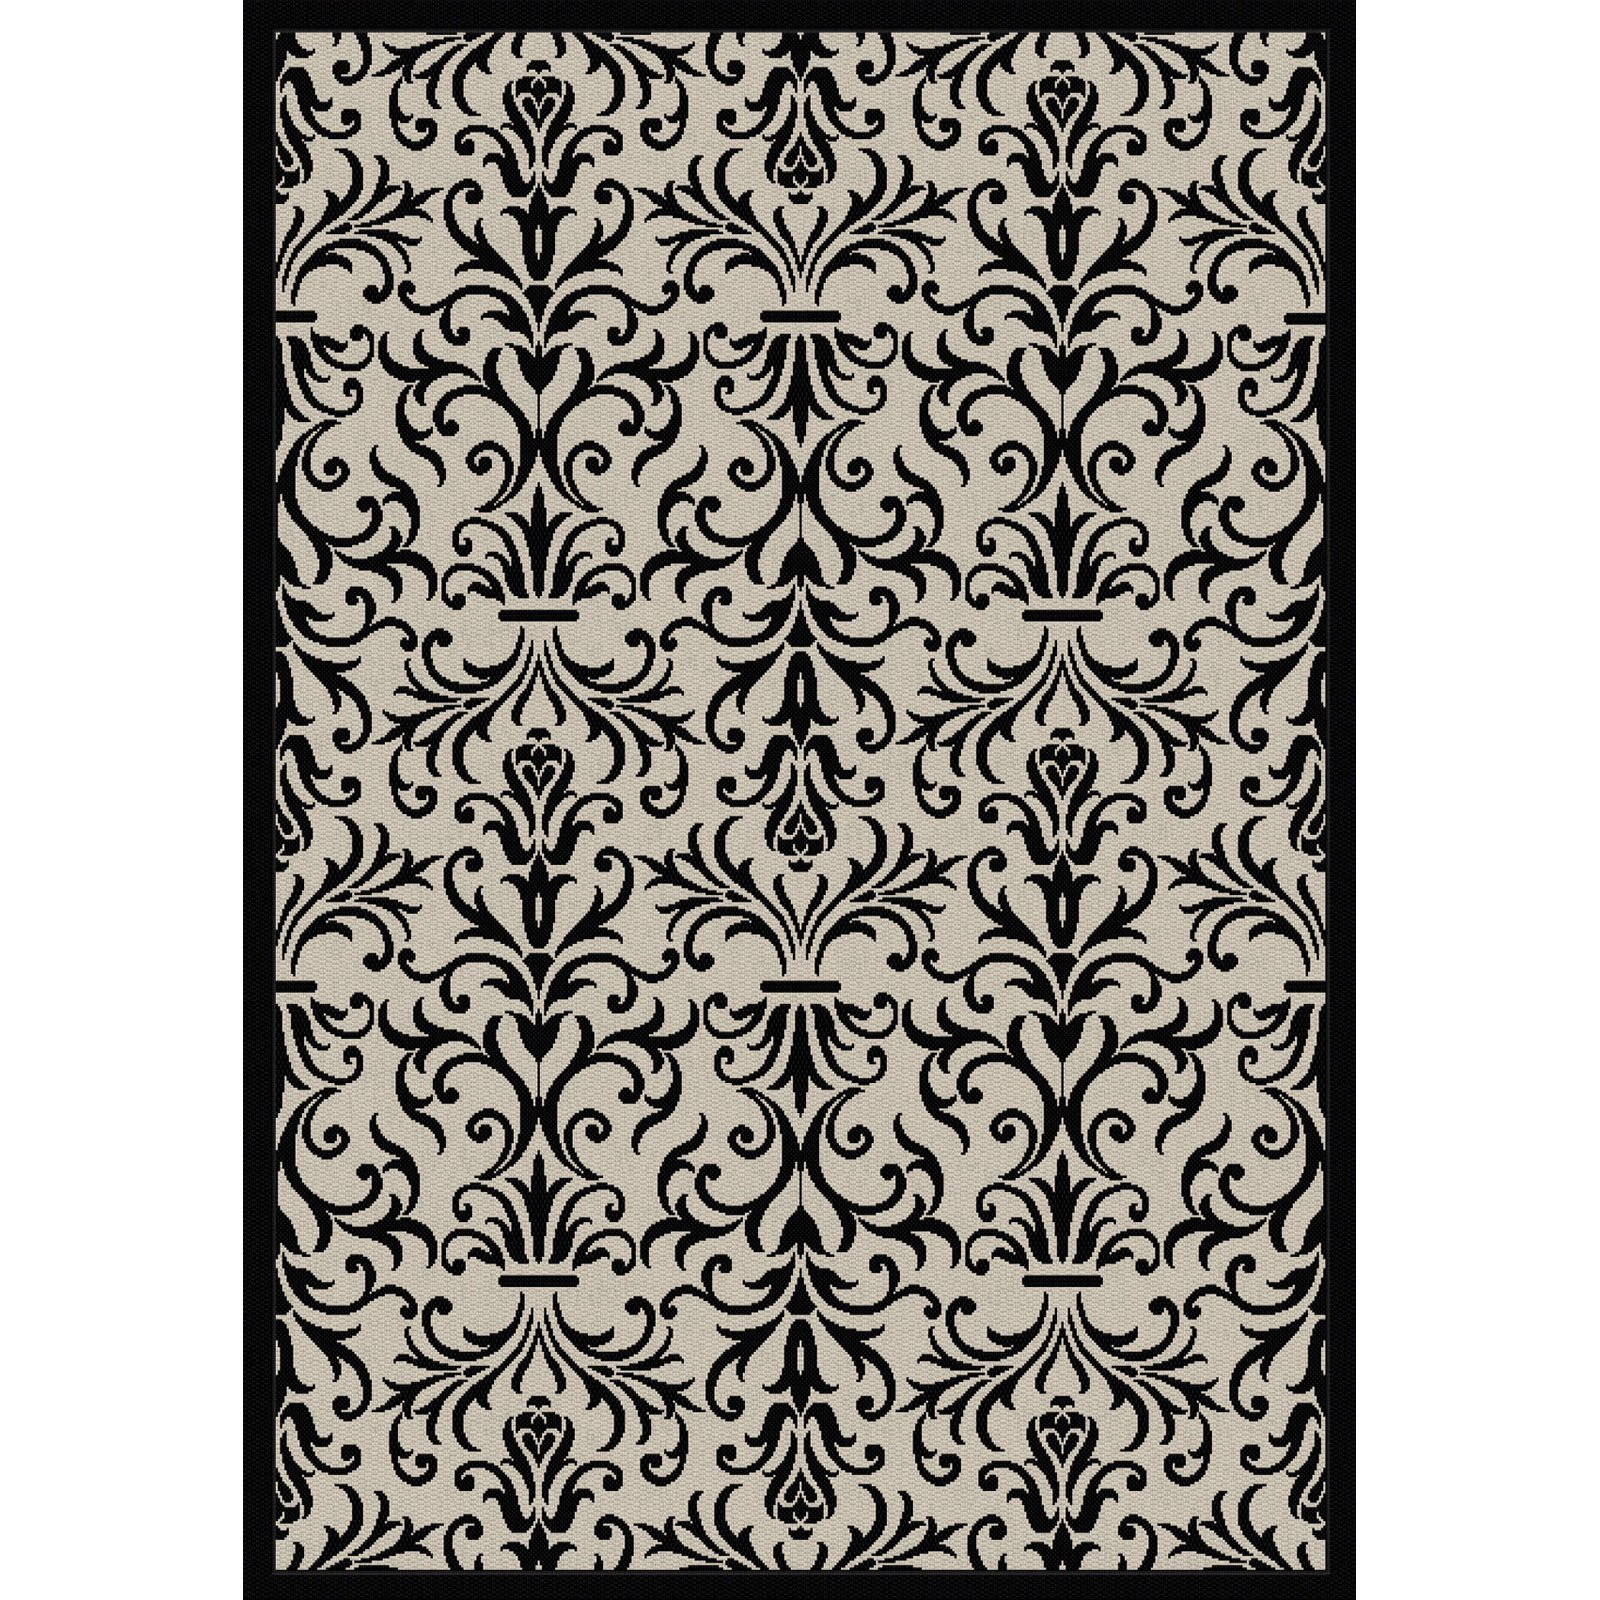 Dynamic Rugs Piazza French Indoor/Outdoor Area Rug - Sand/Black